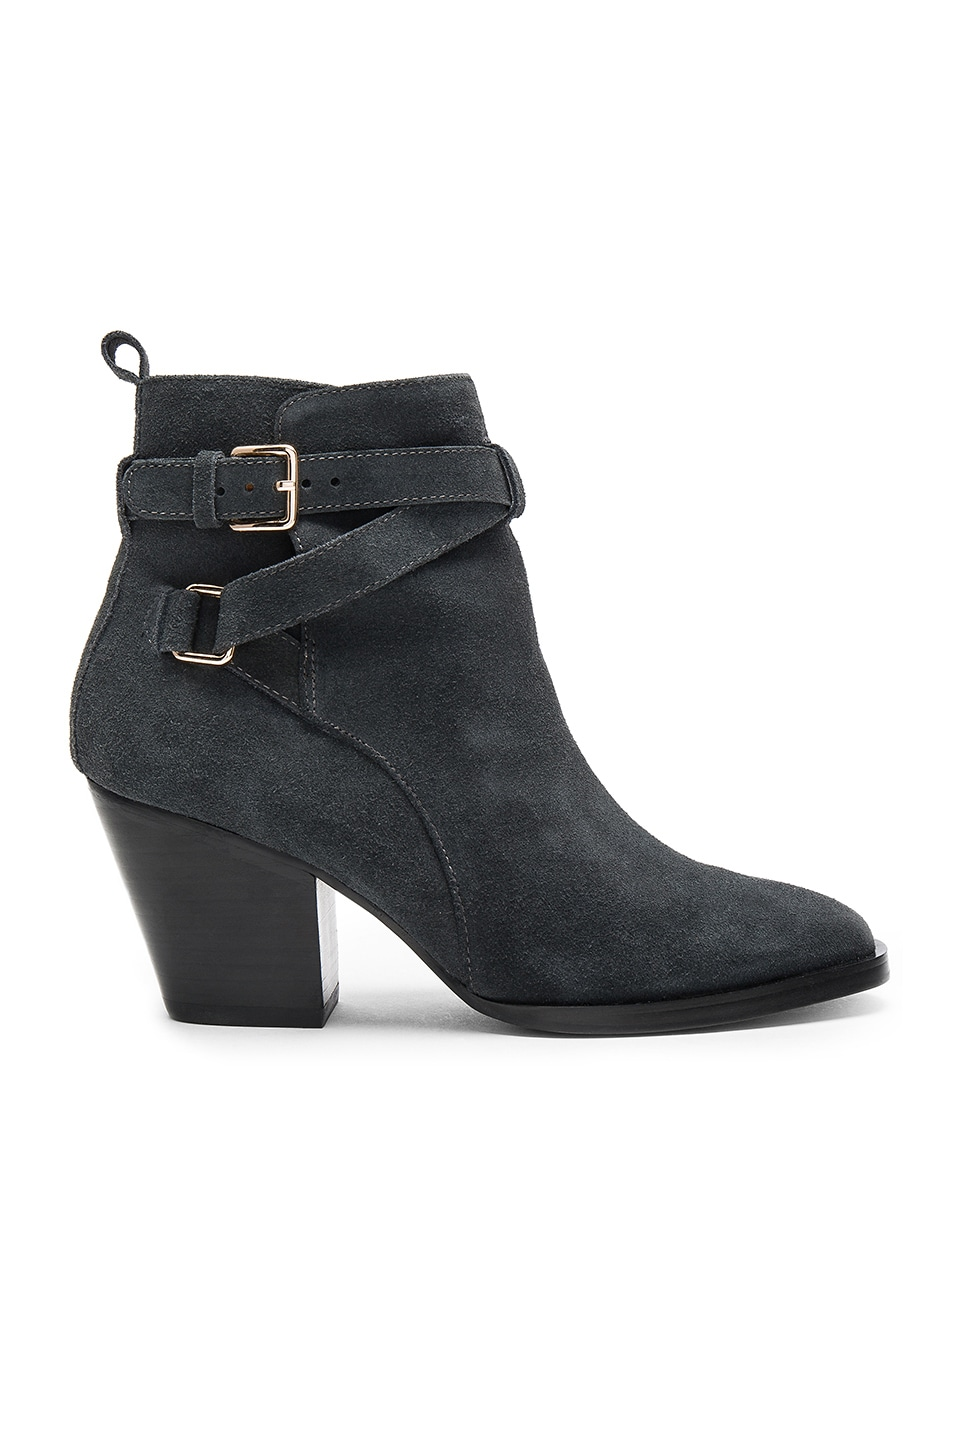 Matiko Amie Booties in Dark Grey